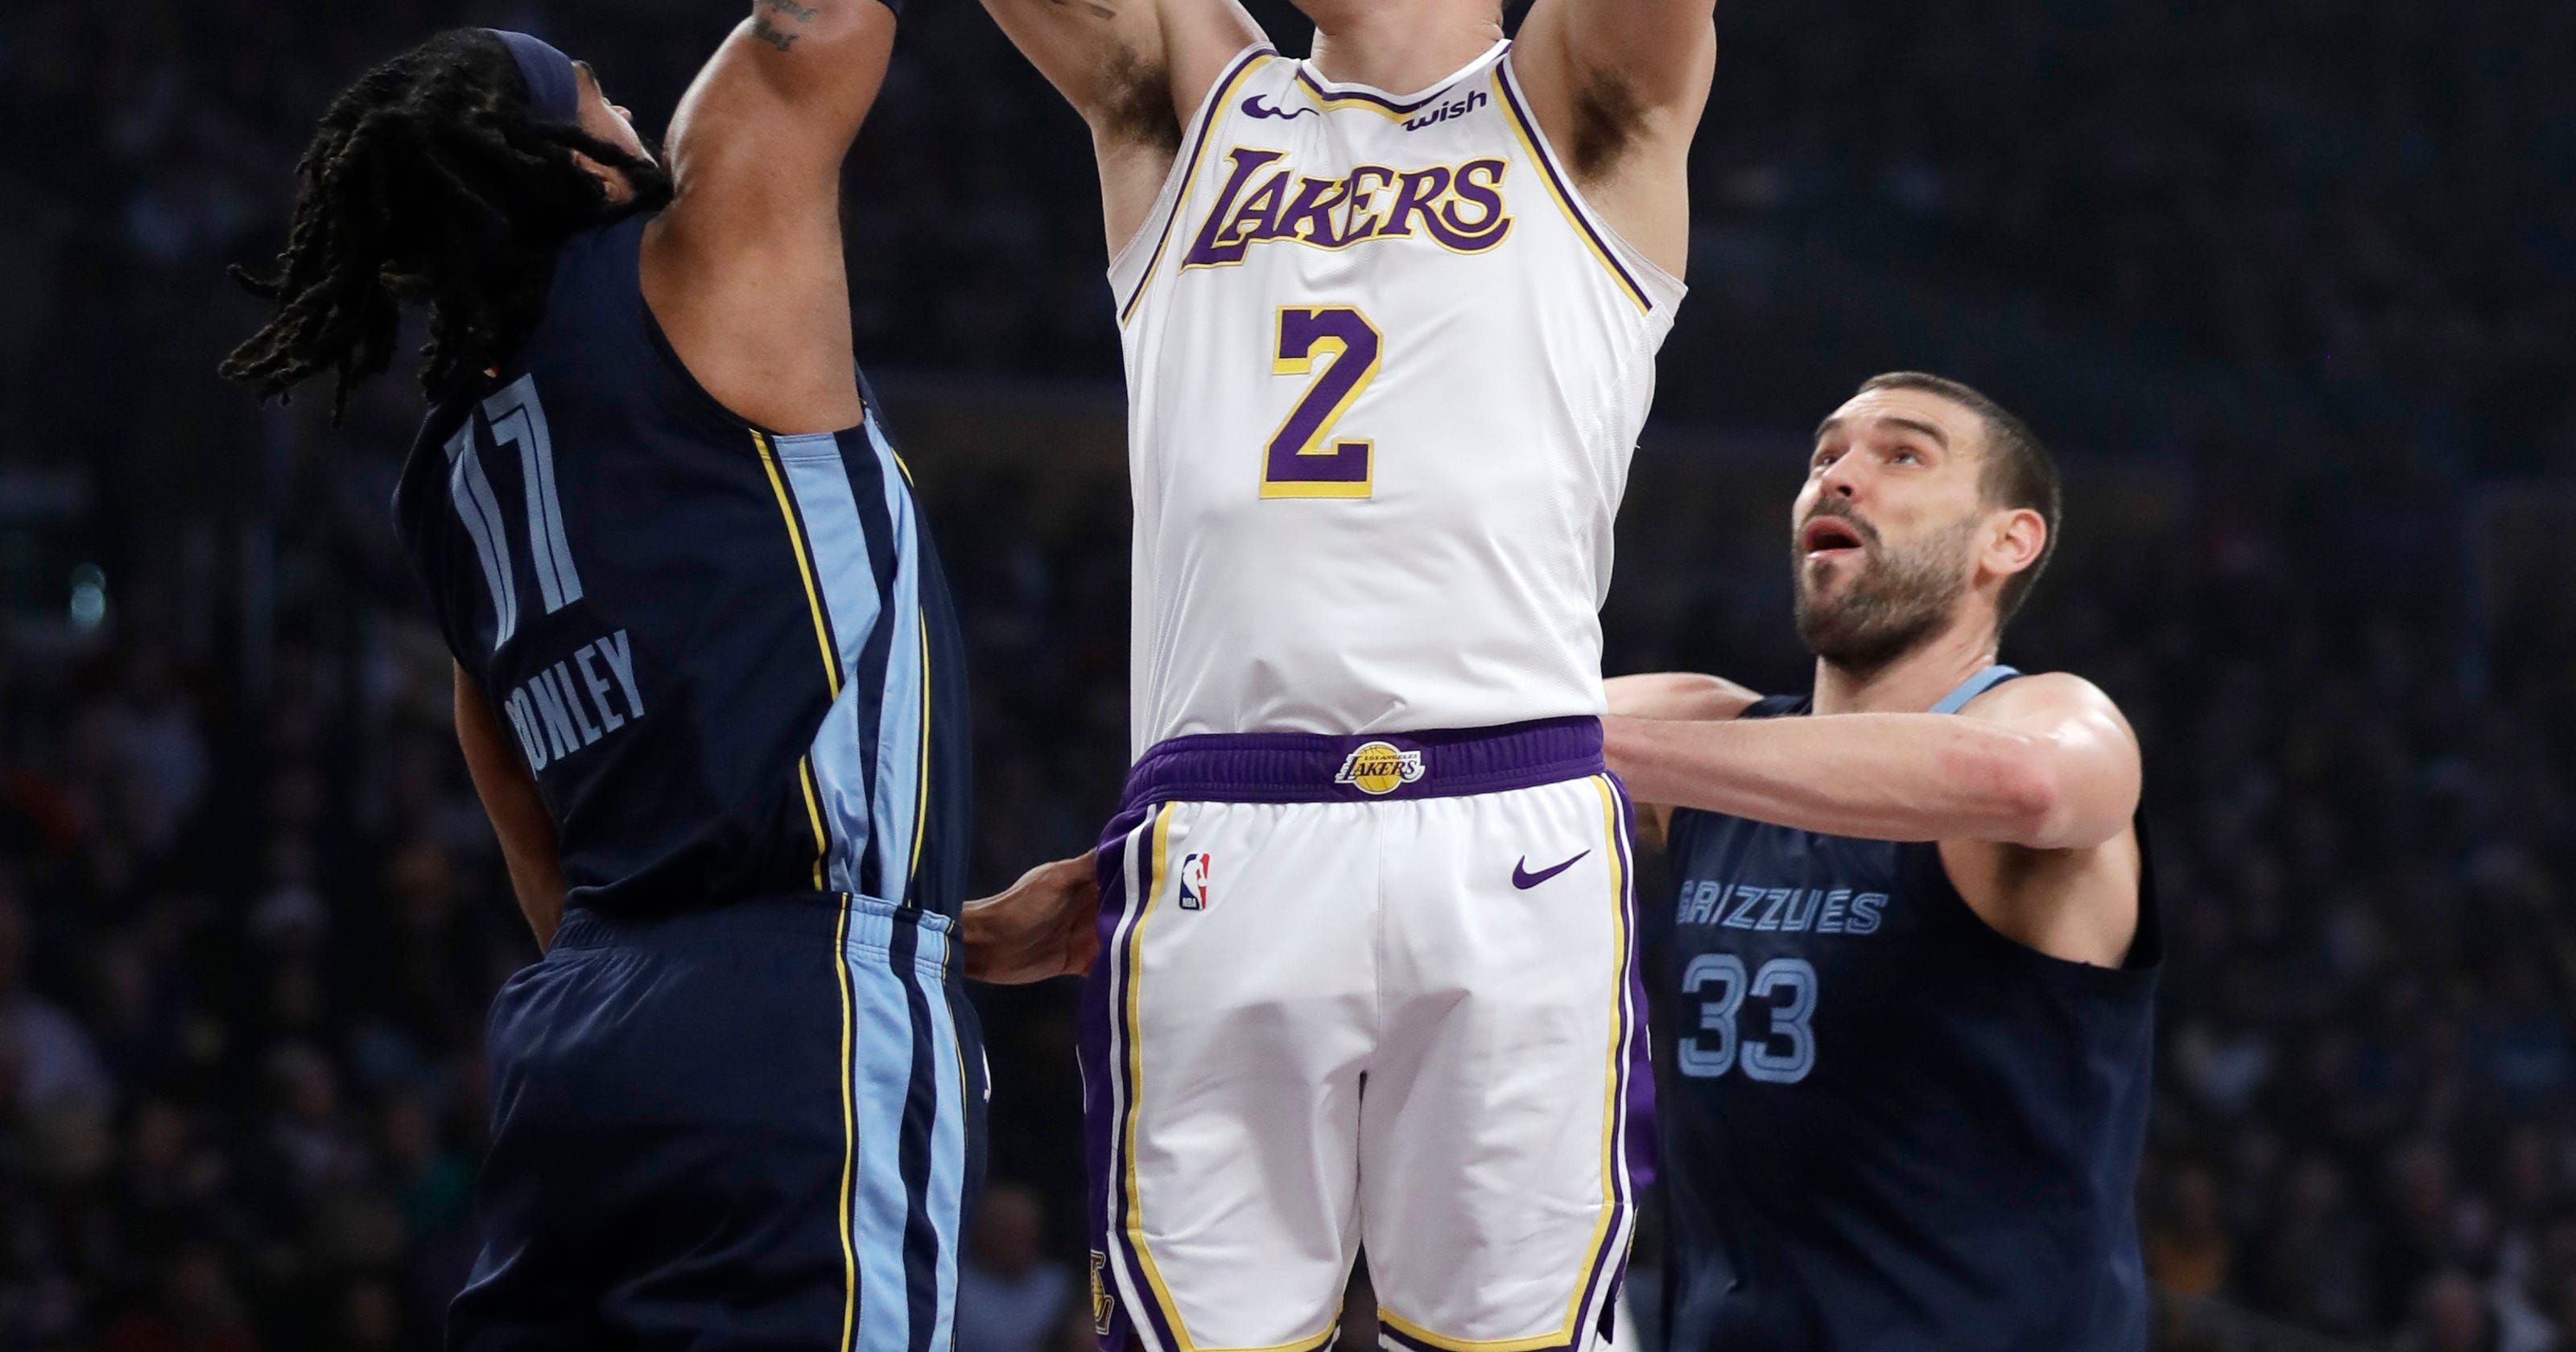 ab7bed512 Grizzlies end 5-game skid by beating Lakers 107-99